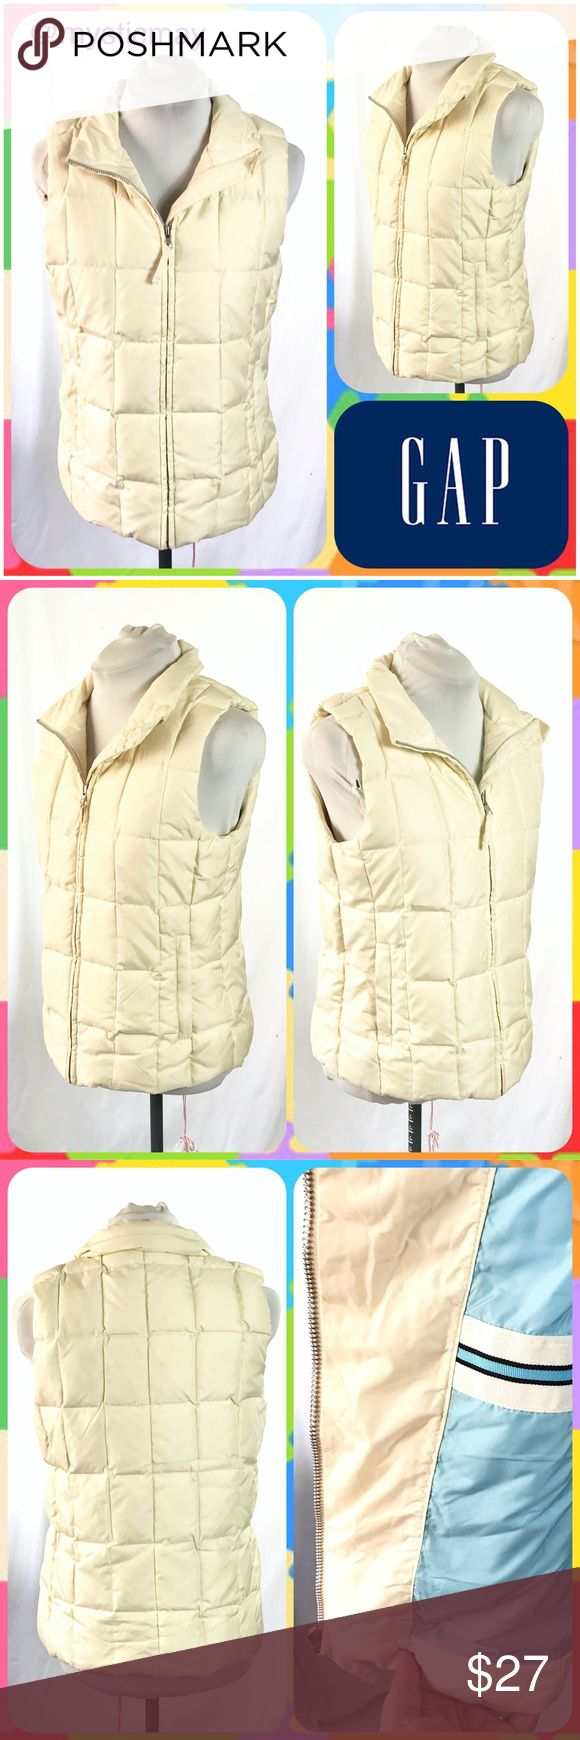 "GAP Cream Down-Filled Quilted Puffer Vest Size S Down-filled quilted puffer vest in a cream color with a cool baby blue inner lining! Horizontal zip pockets on the outside and an additional zip pocket at the chest on the inside. Size S or 4/6. Measures 19"" across the chest and 24"" in length. Perfect for ski weather! GAP Jackets & Coats Vests"